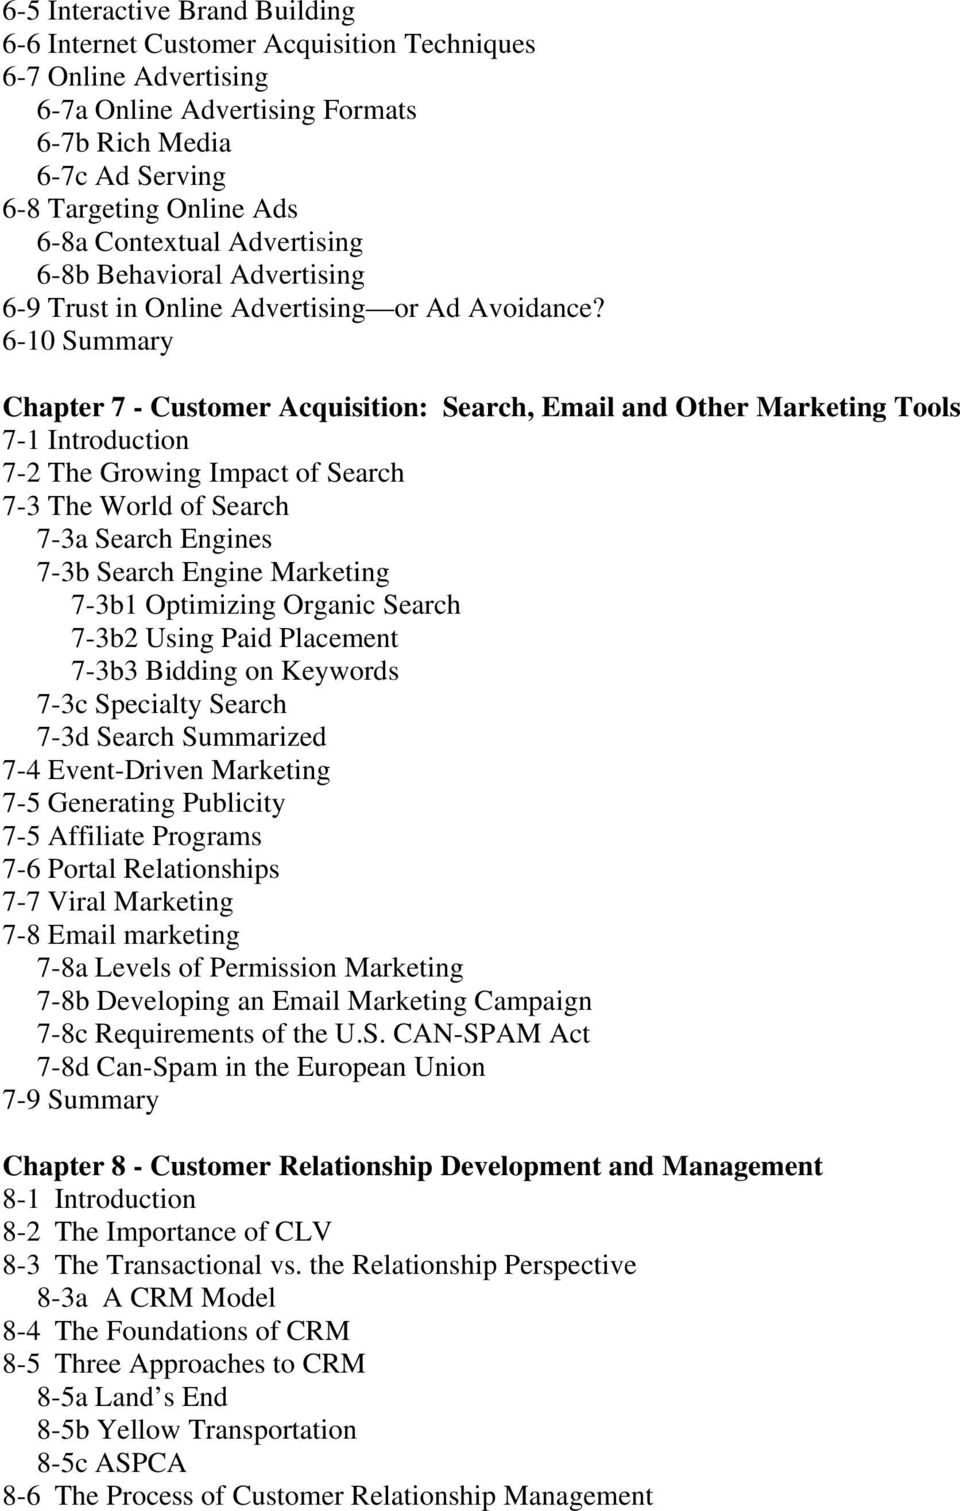 6-10 Summary Chapter 7 - Customer Acquisition: Search, Email and Other Marketing Tools 7-1 Introduction 7-2 The Growing Impact of Search 7-3 The World of Search 7-3a Search Engines 7-3b Search Engine